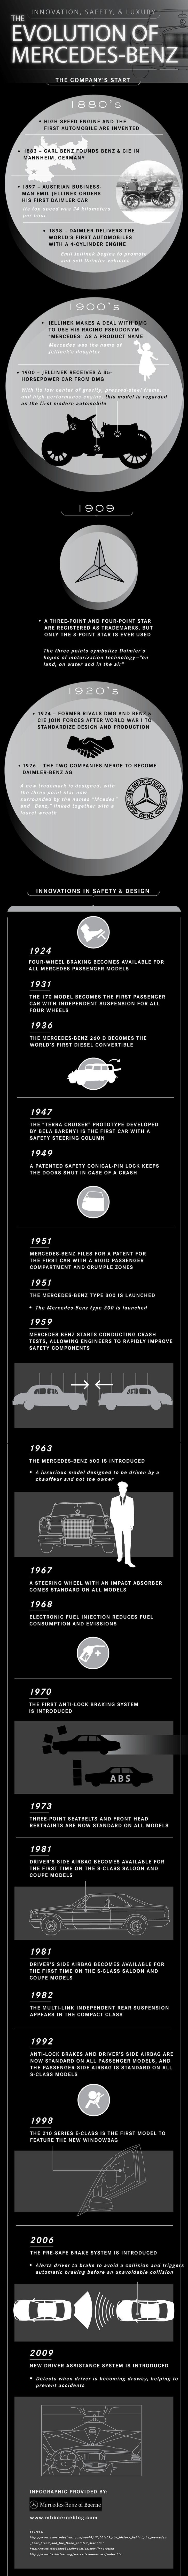 12 best the beginning of mercedes benz images on pinterest